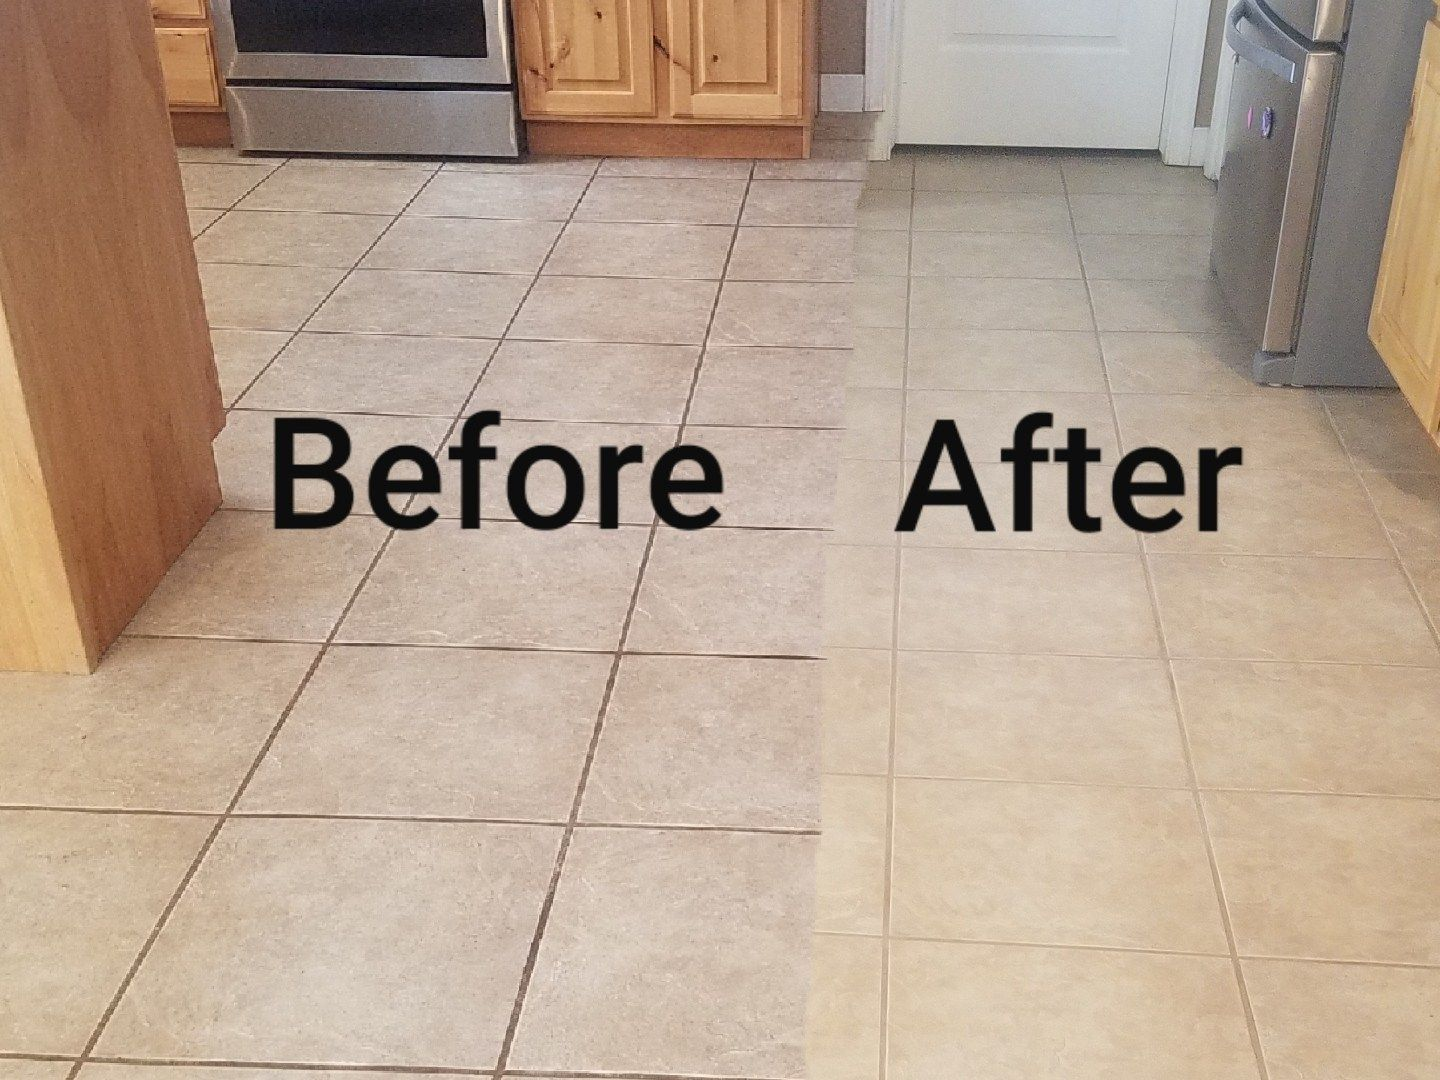 How To Clean Tile Without Harsh Chemicals Or Residue Clean Tile Clean Tile Grout Grout Cleaner